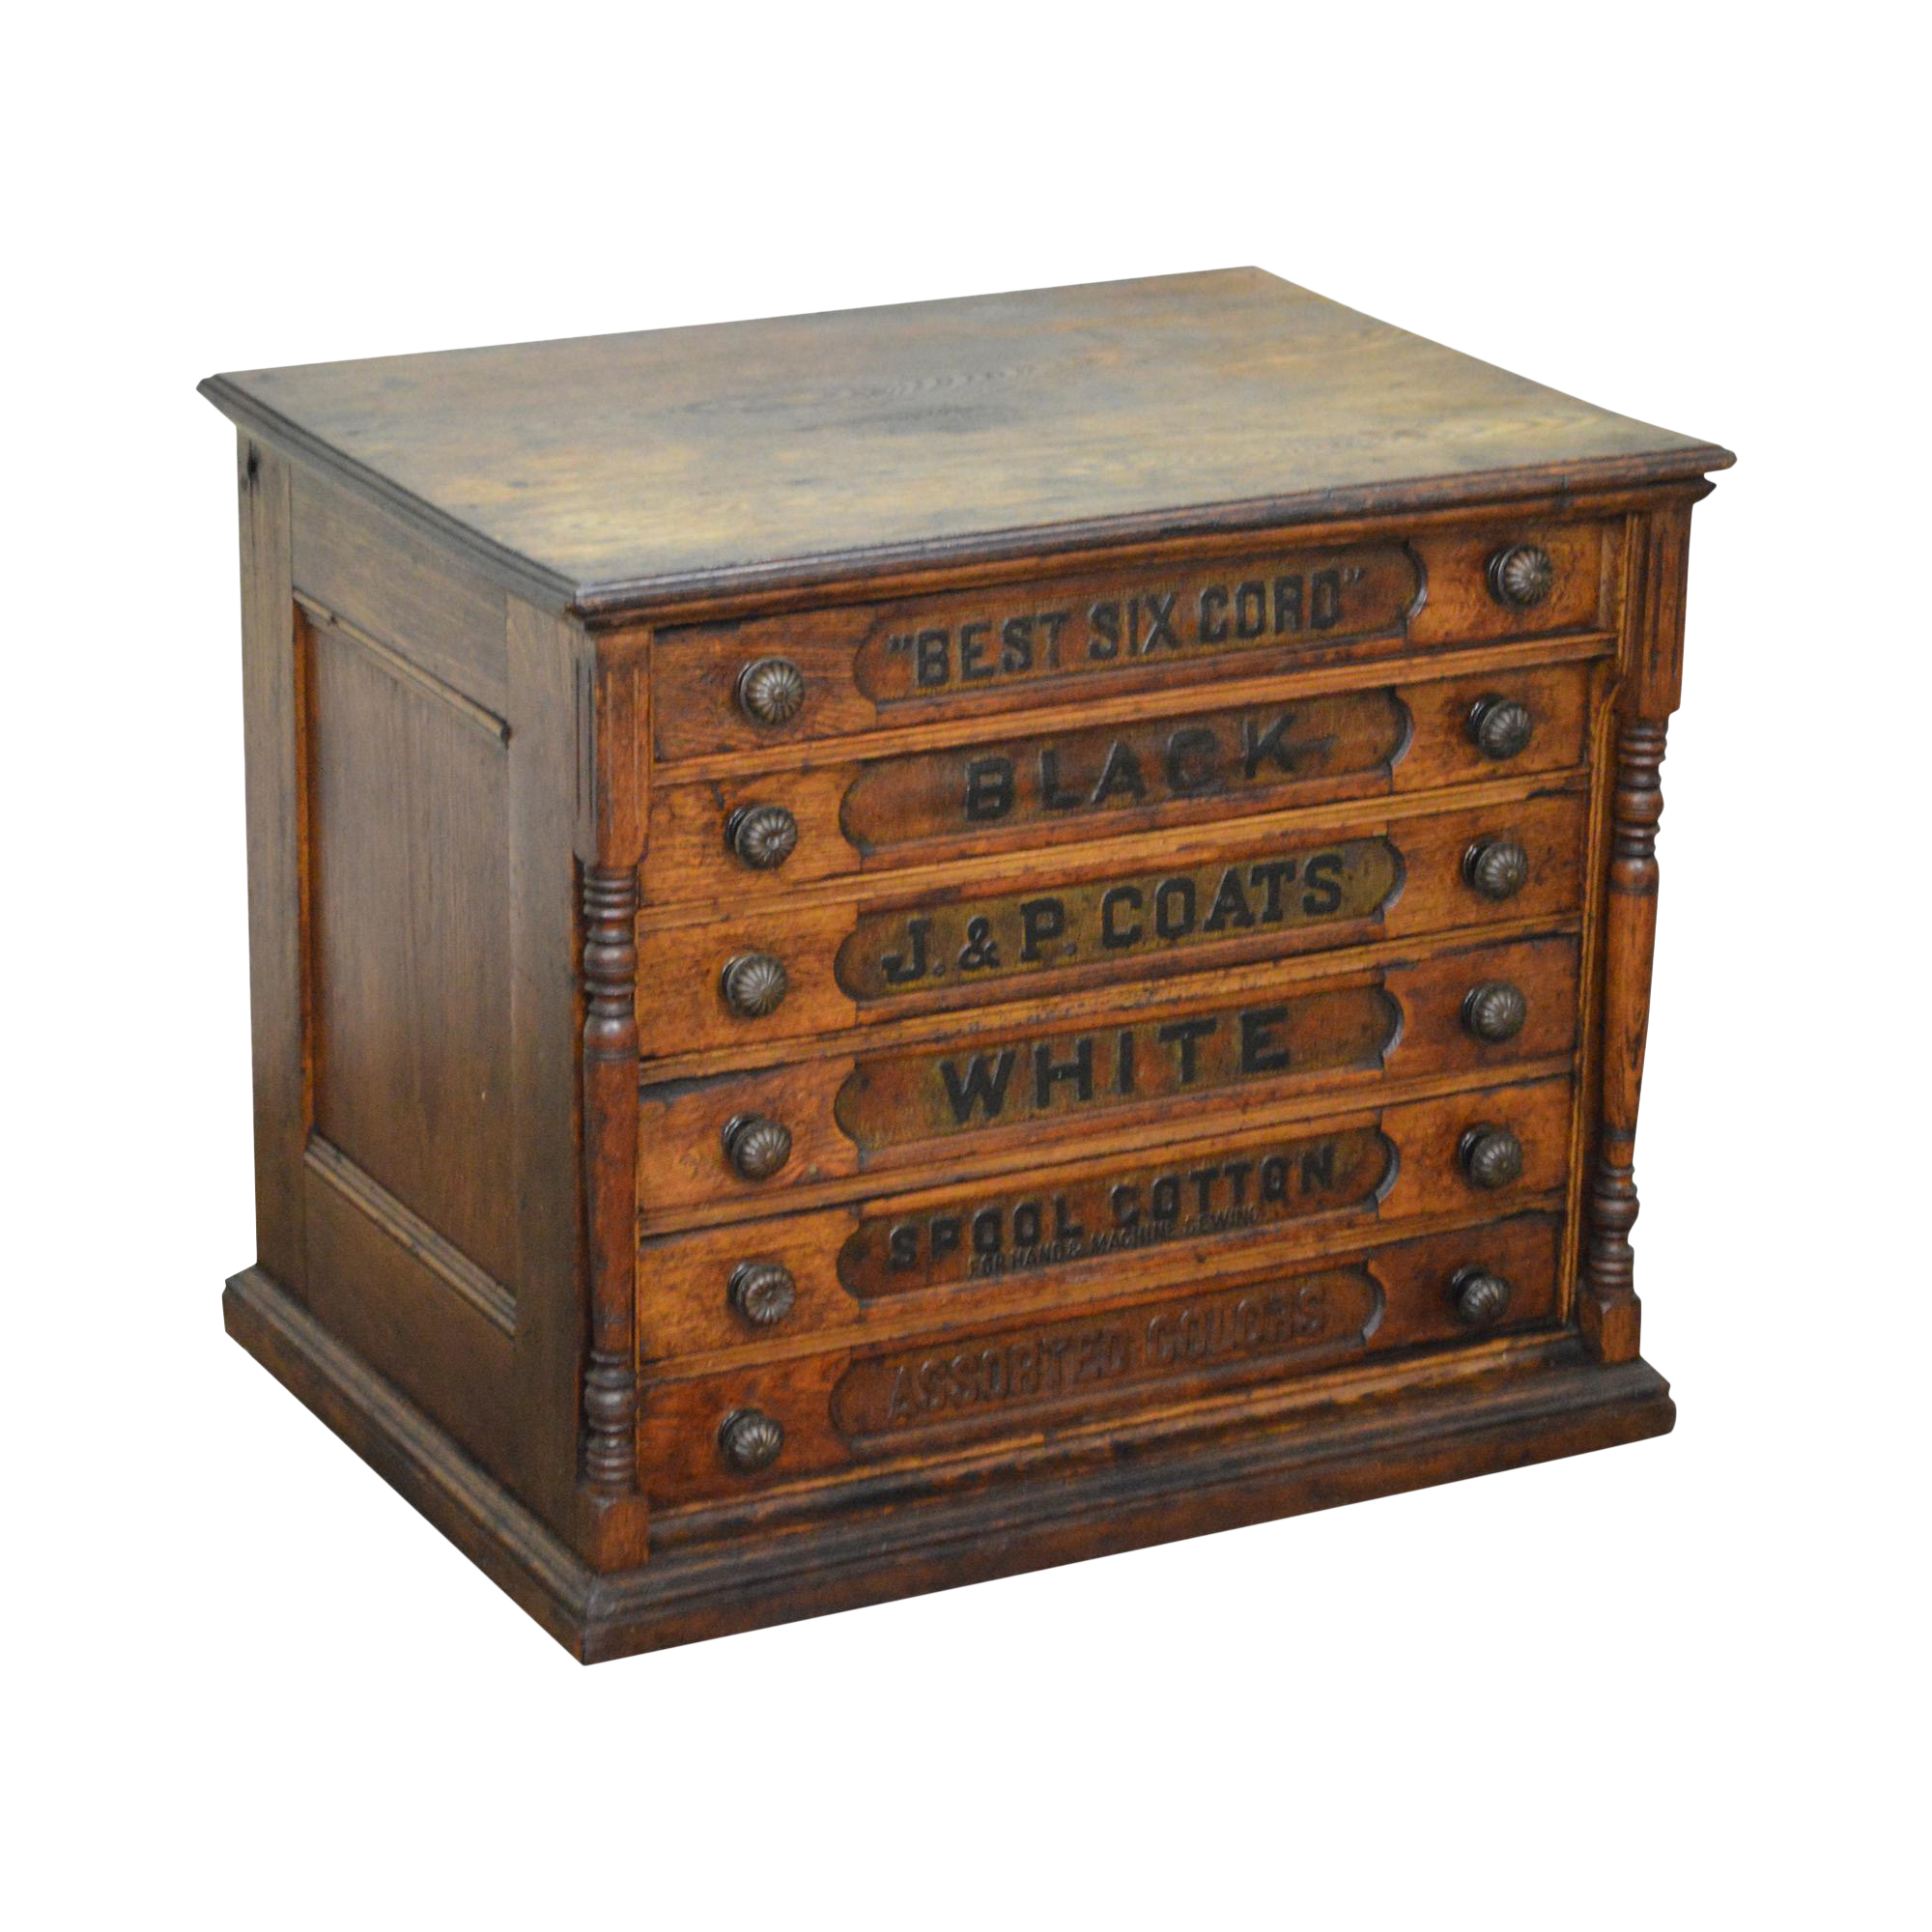 Ju0026P Coats Antique Country Store 6 Drawer Spool Cabinet